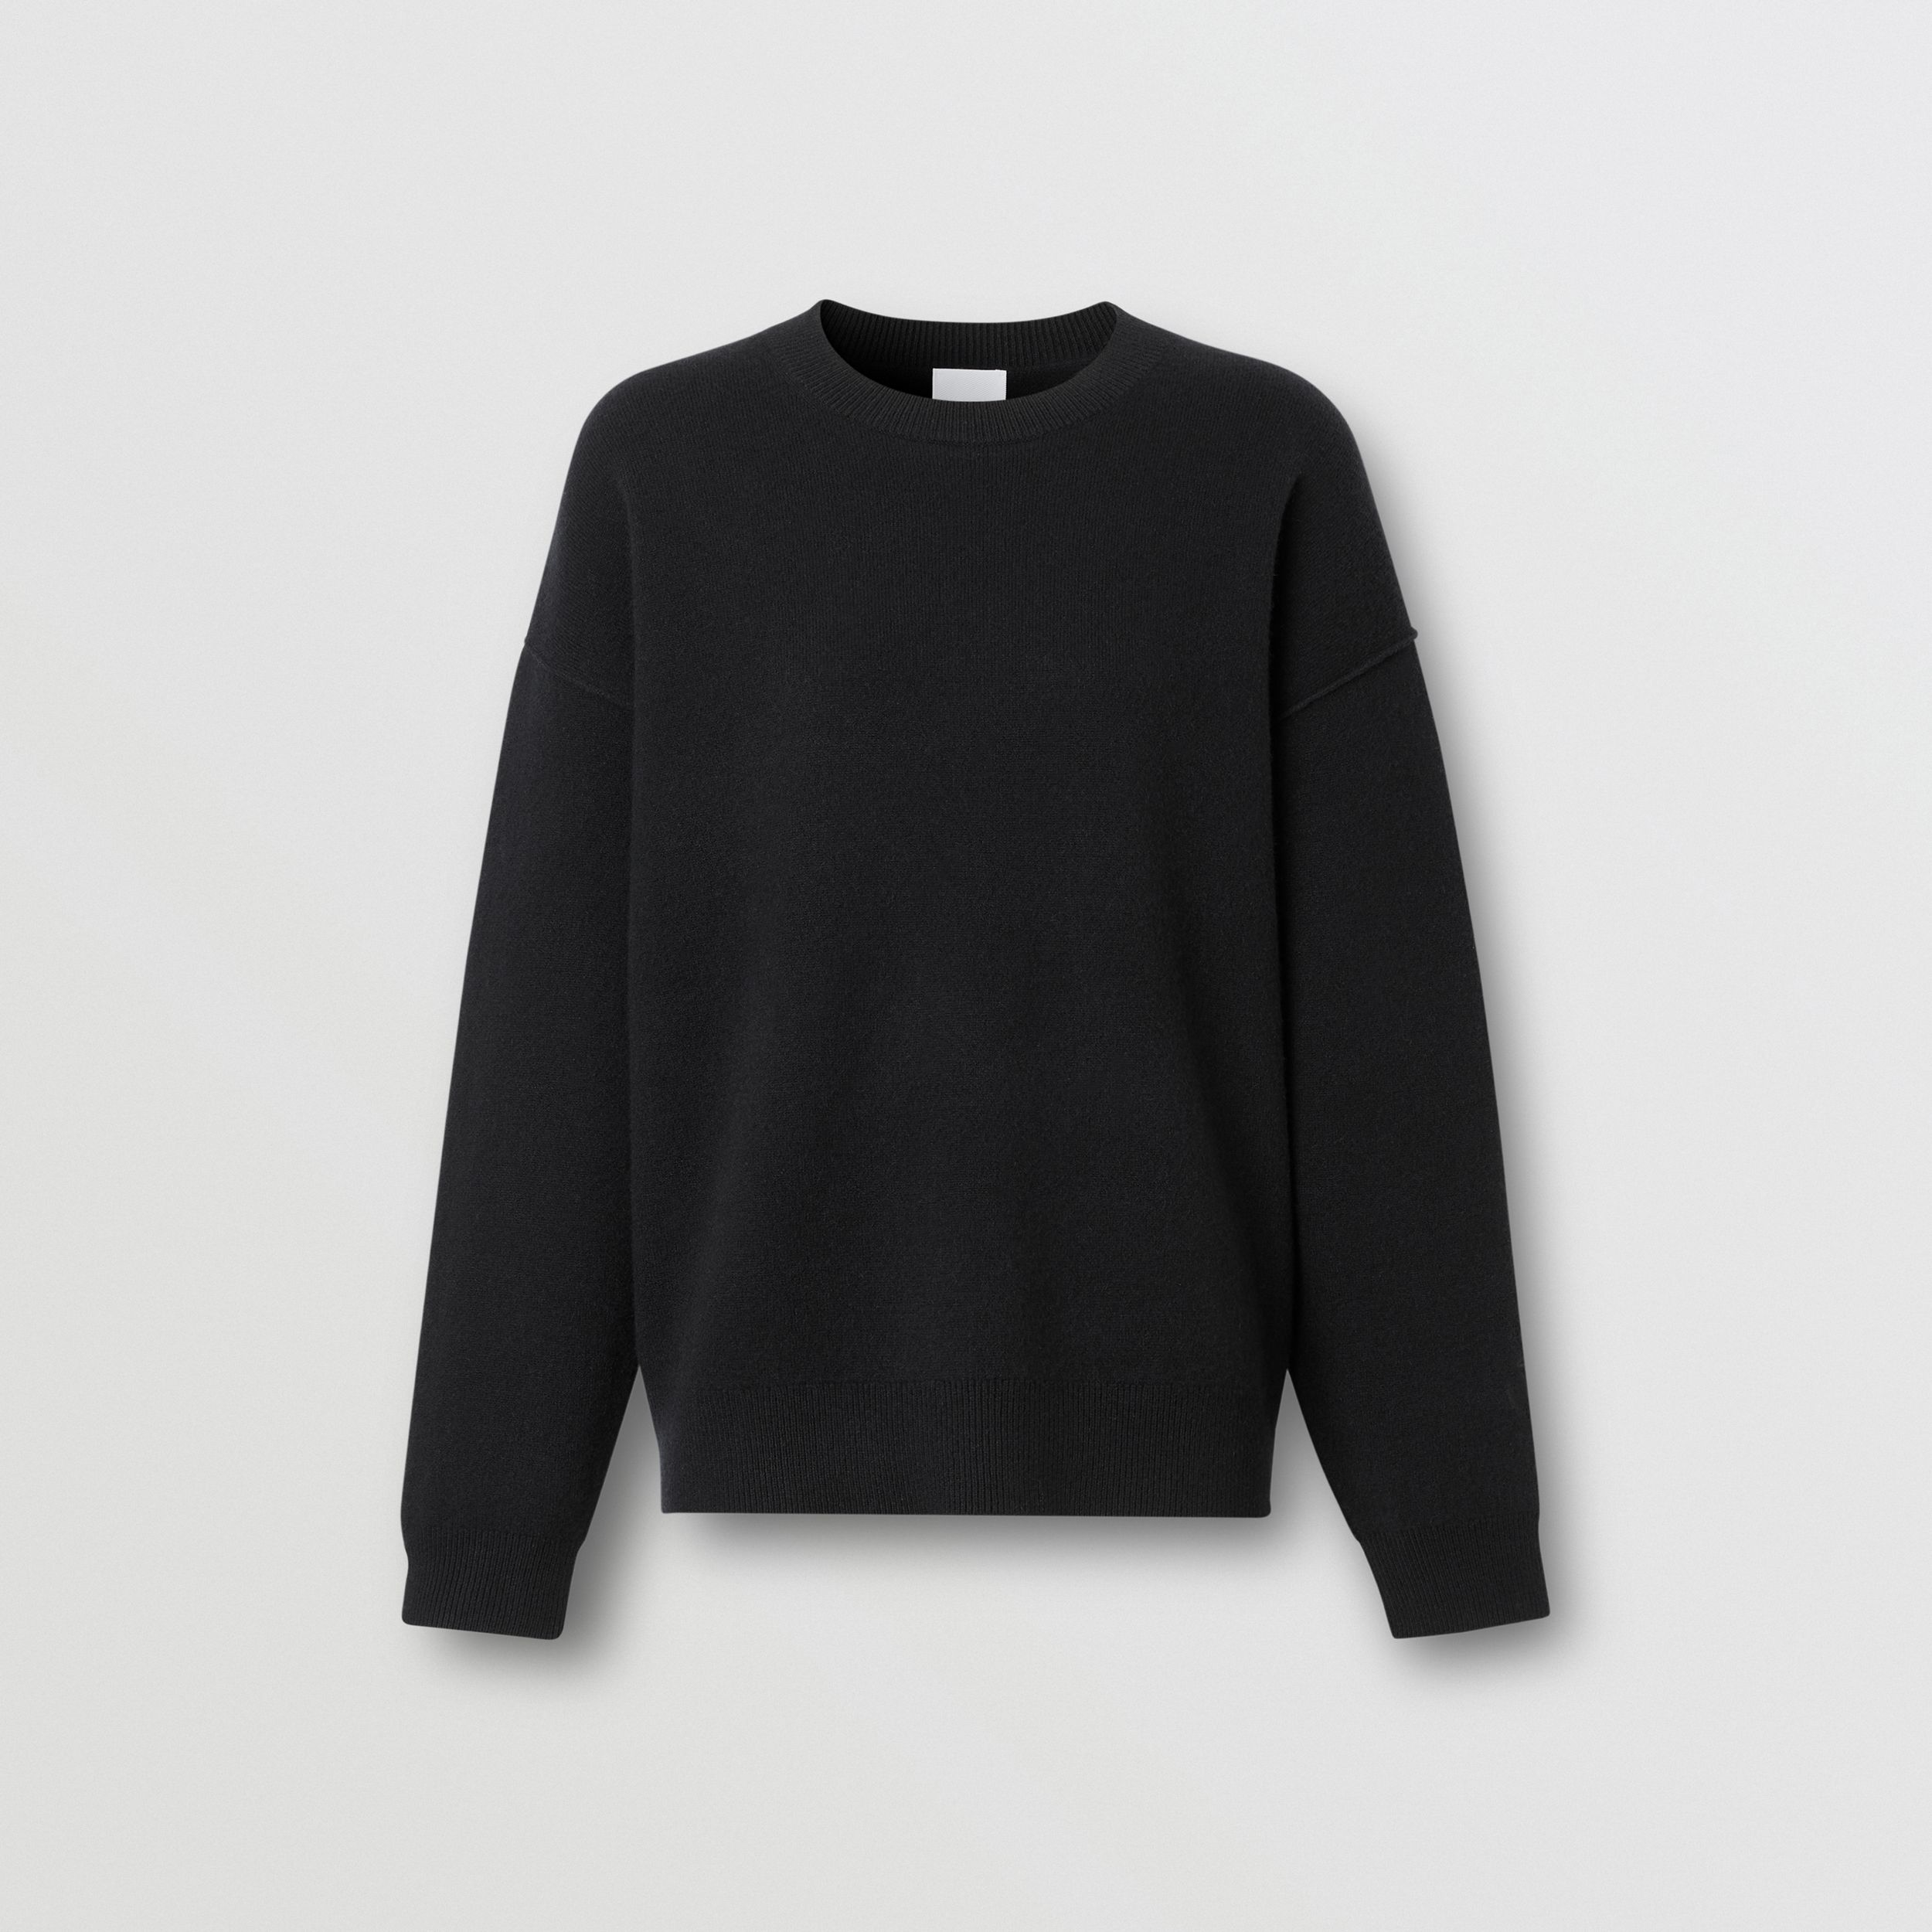 Monogram Motif Cashmere Blend Sweater in Black - Women | Burberry - 4